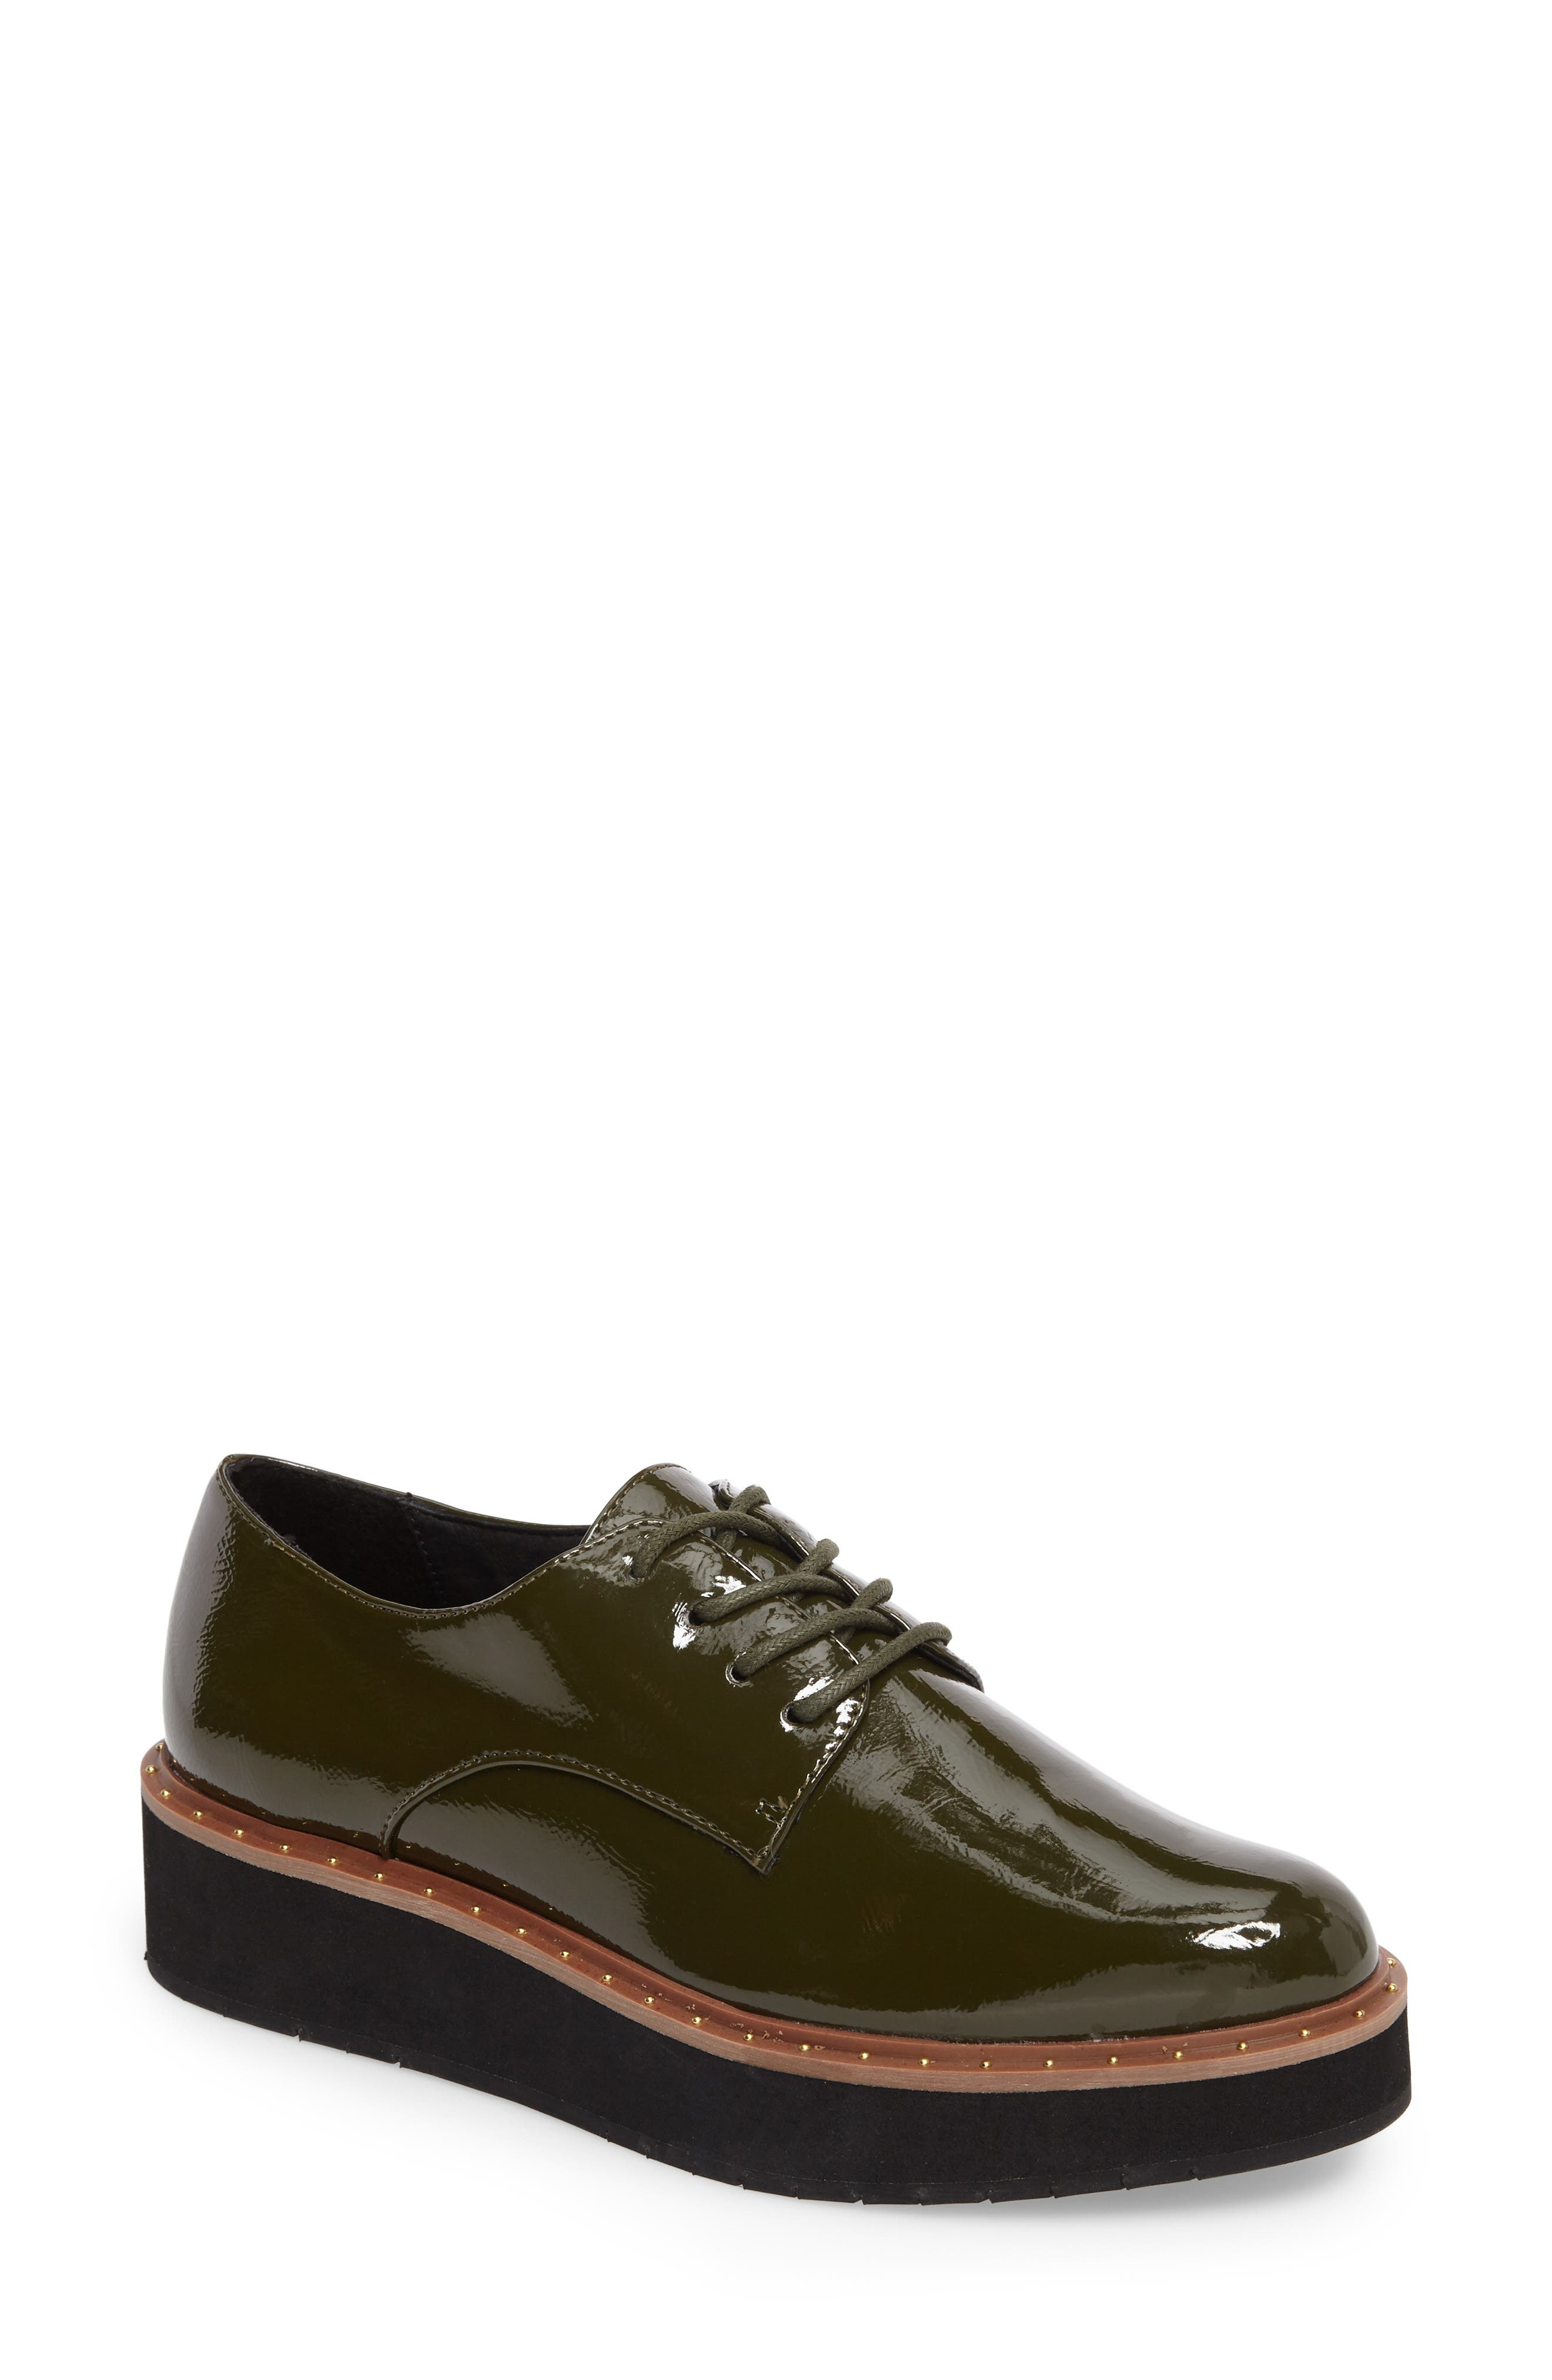 Alternate Image 1 Selected - Chinese Laundry Cecilia Platform Oxford (Women)